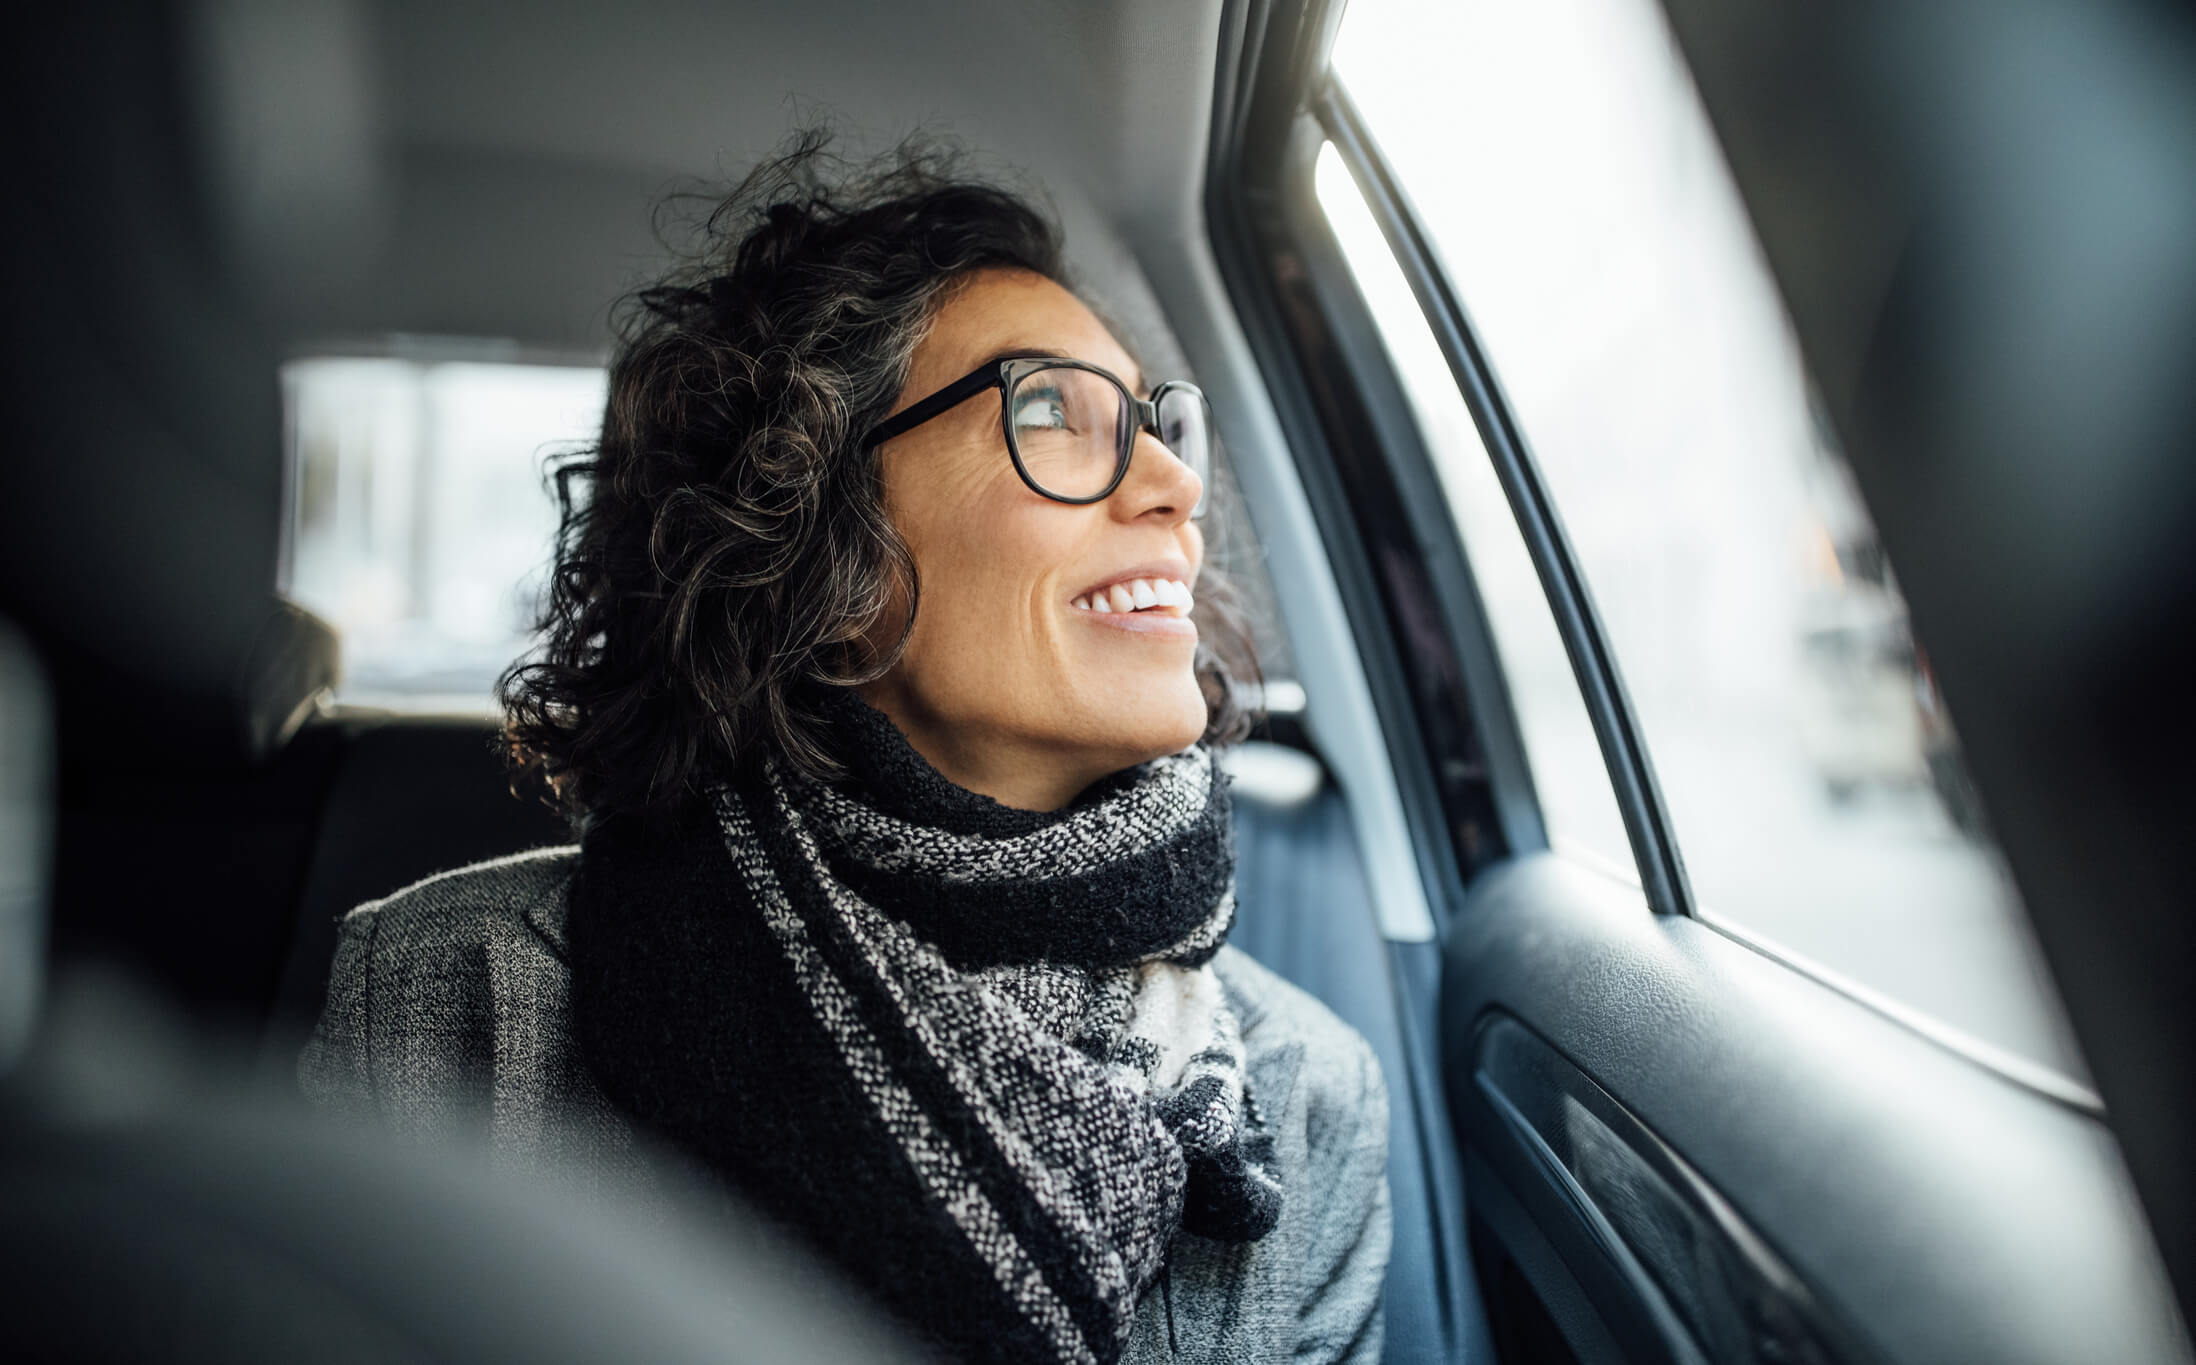 Female professional traveling via car for work